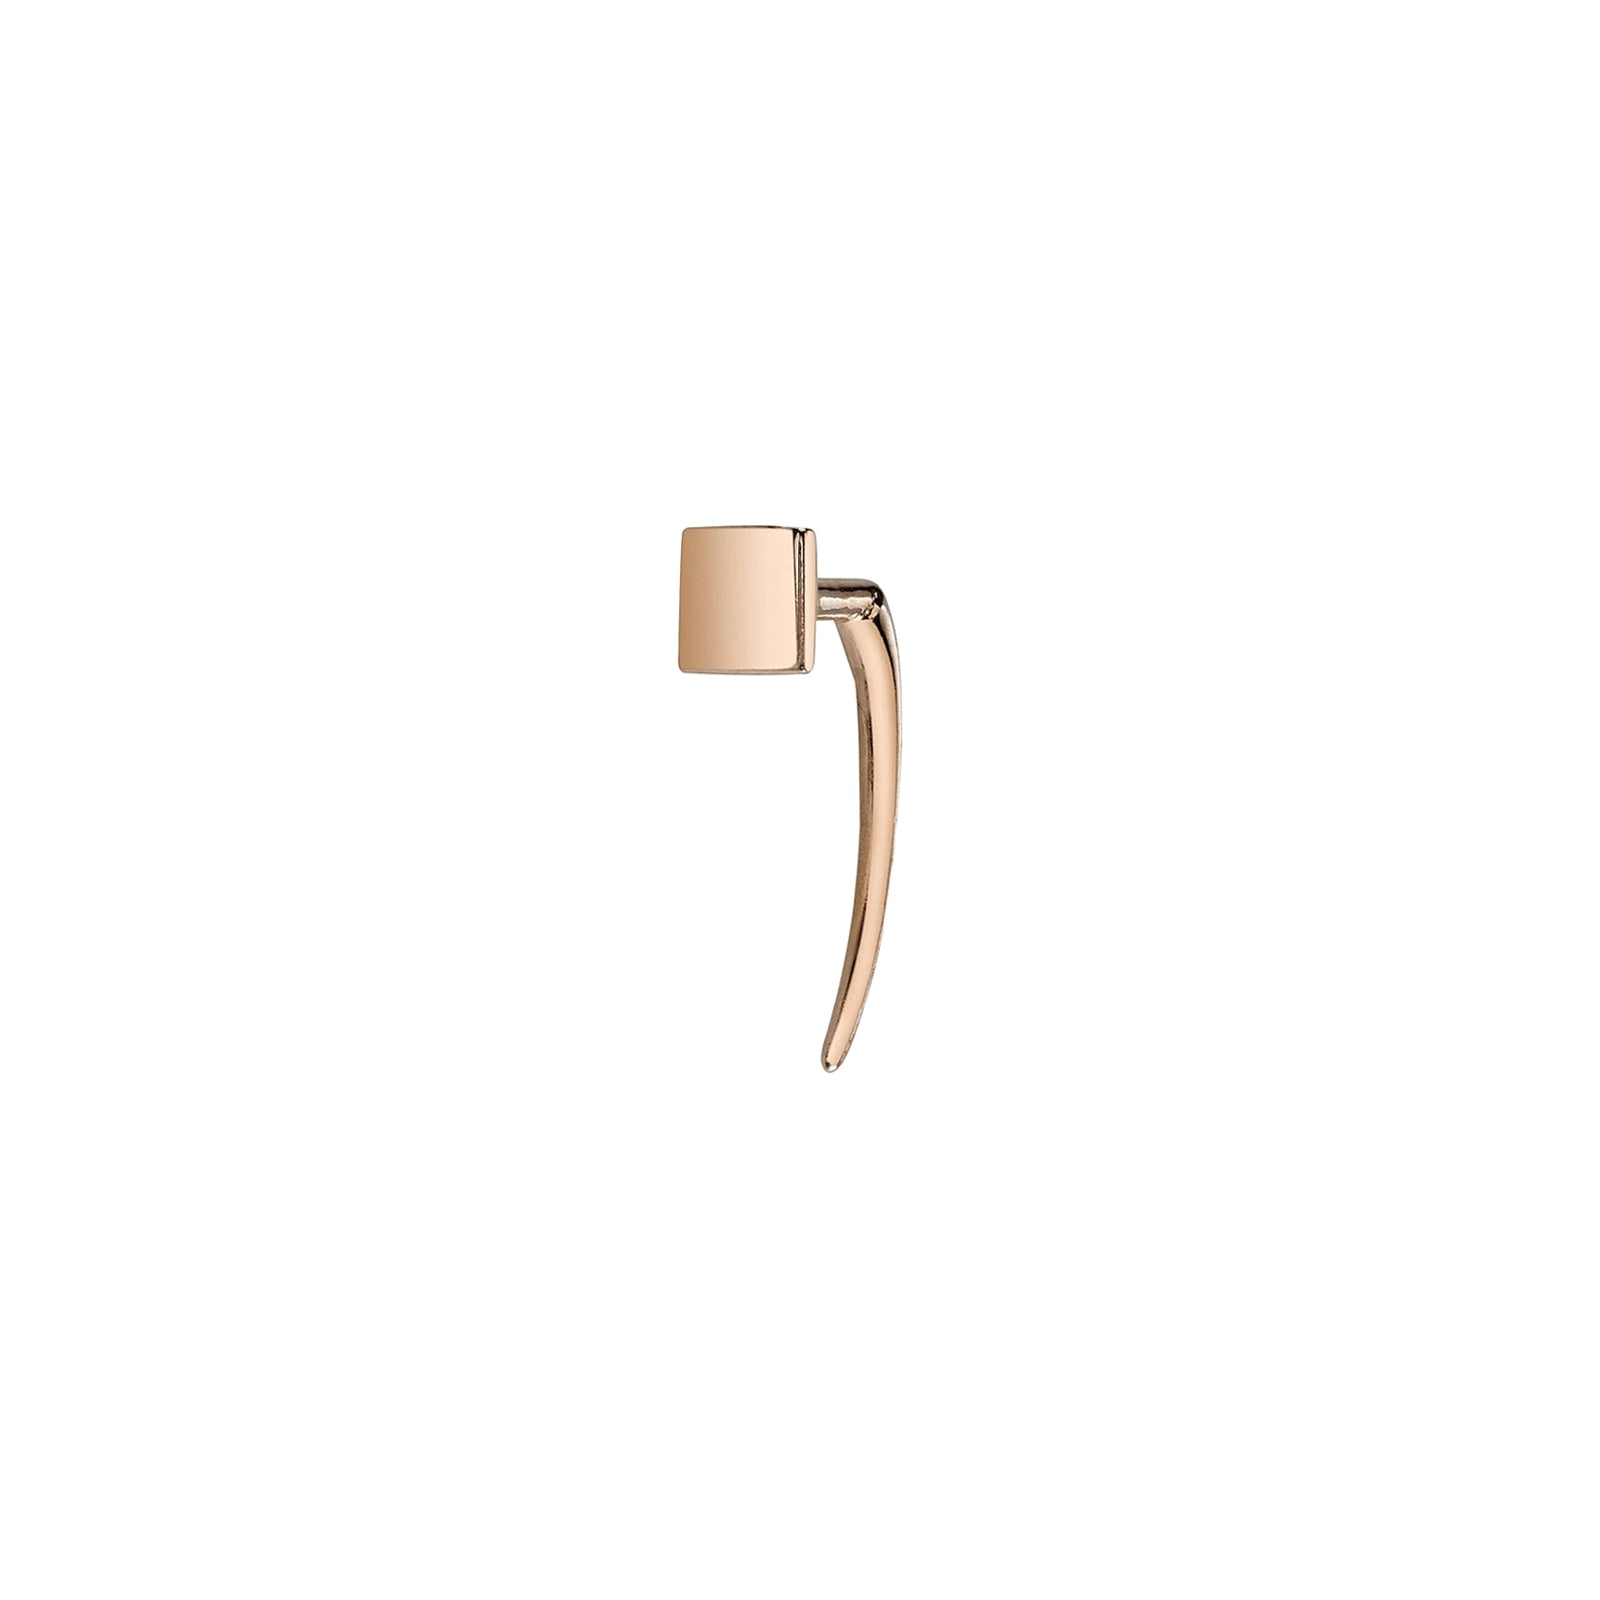 Gabriela Artigas & Company Square Infinite Tusk Earrings - Rose Gold - Earrings - Broken English Jewelry